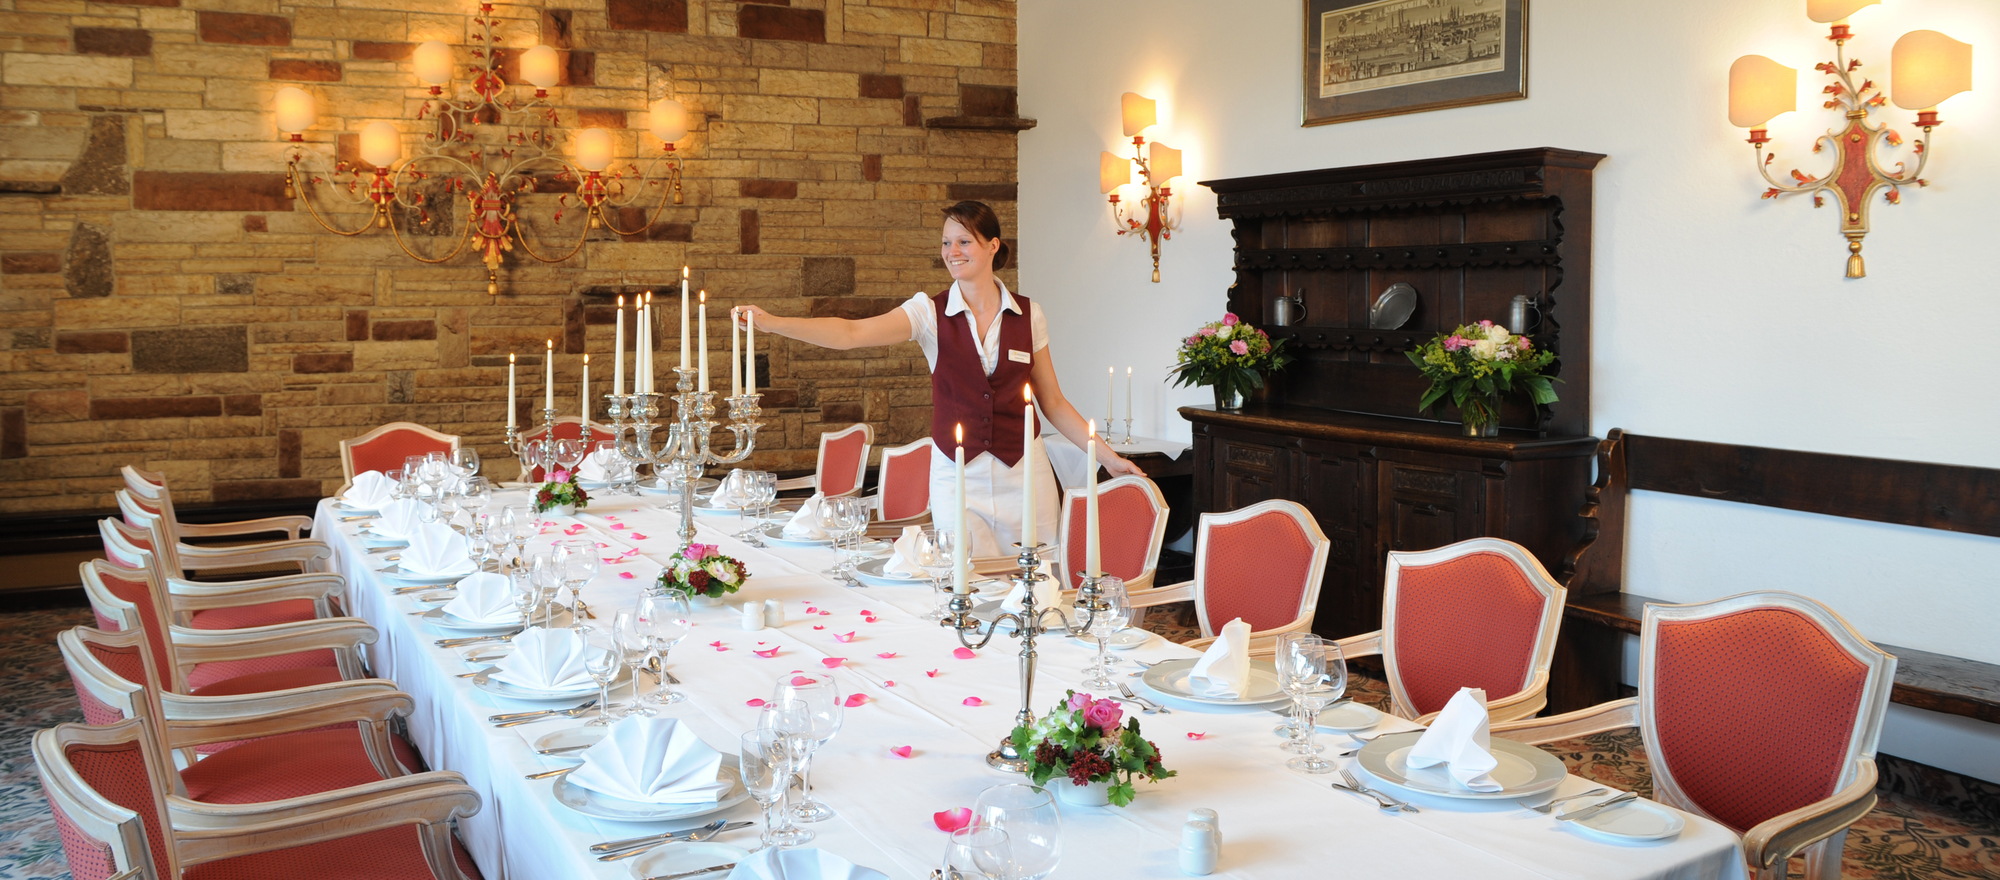 Elegant rooms for celebrations in the 4-star Ringhotel Seehof in Berlin